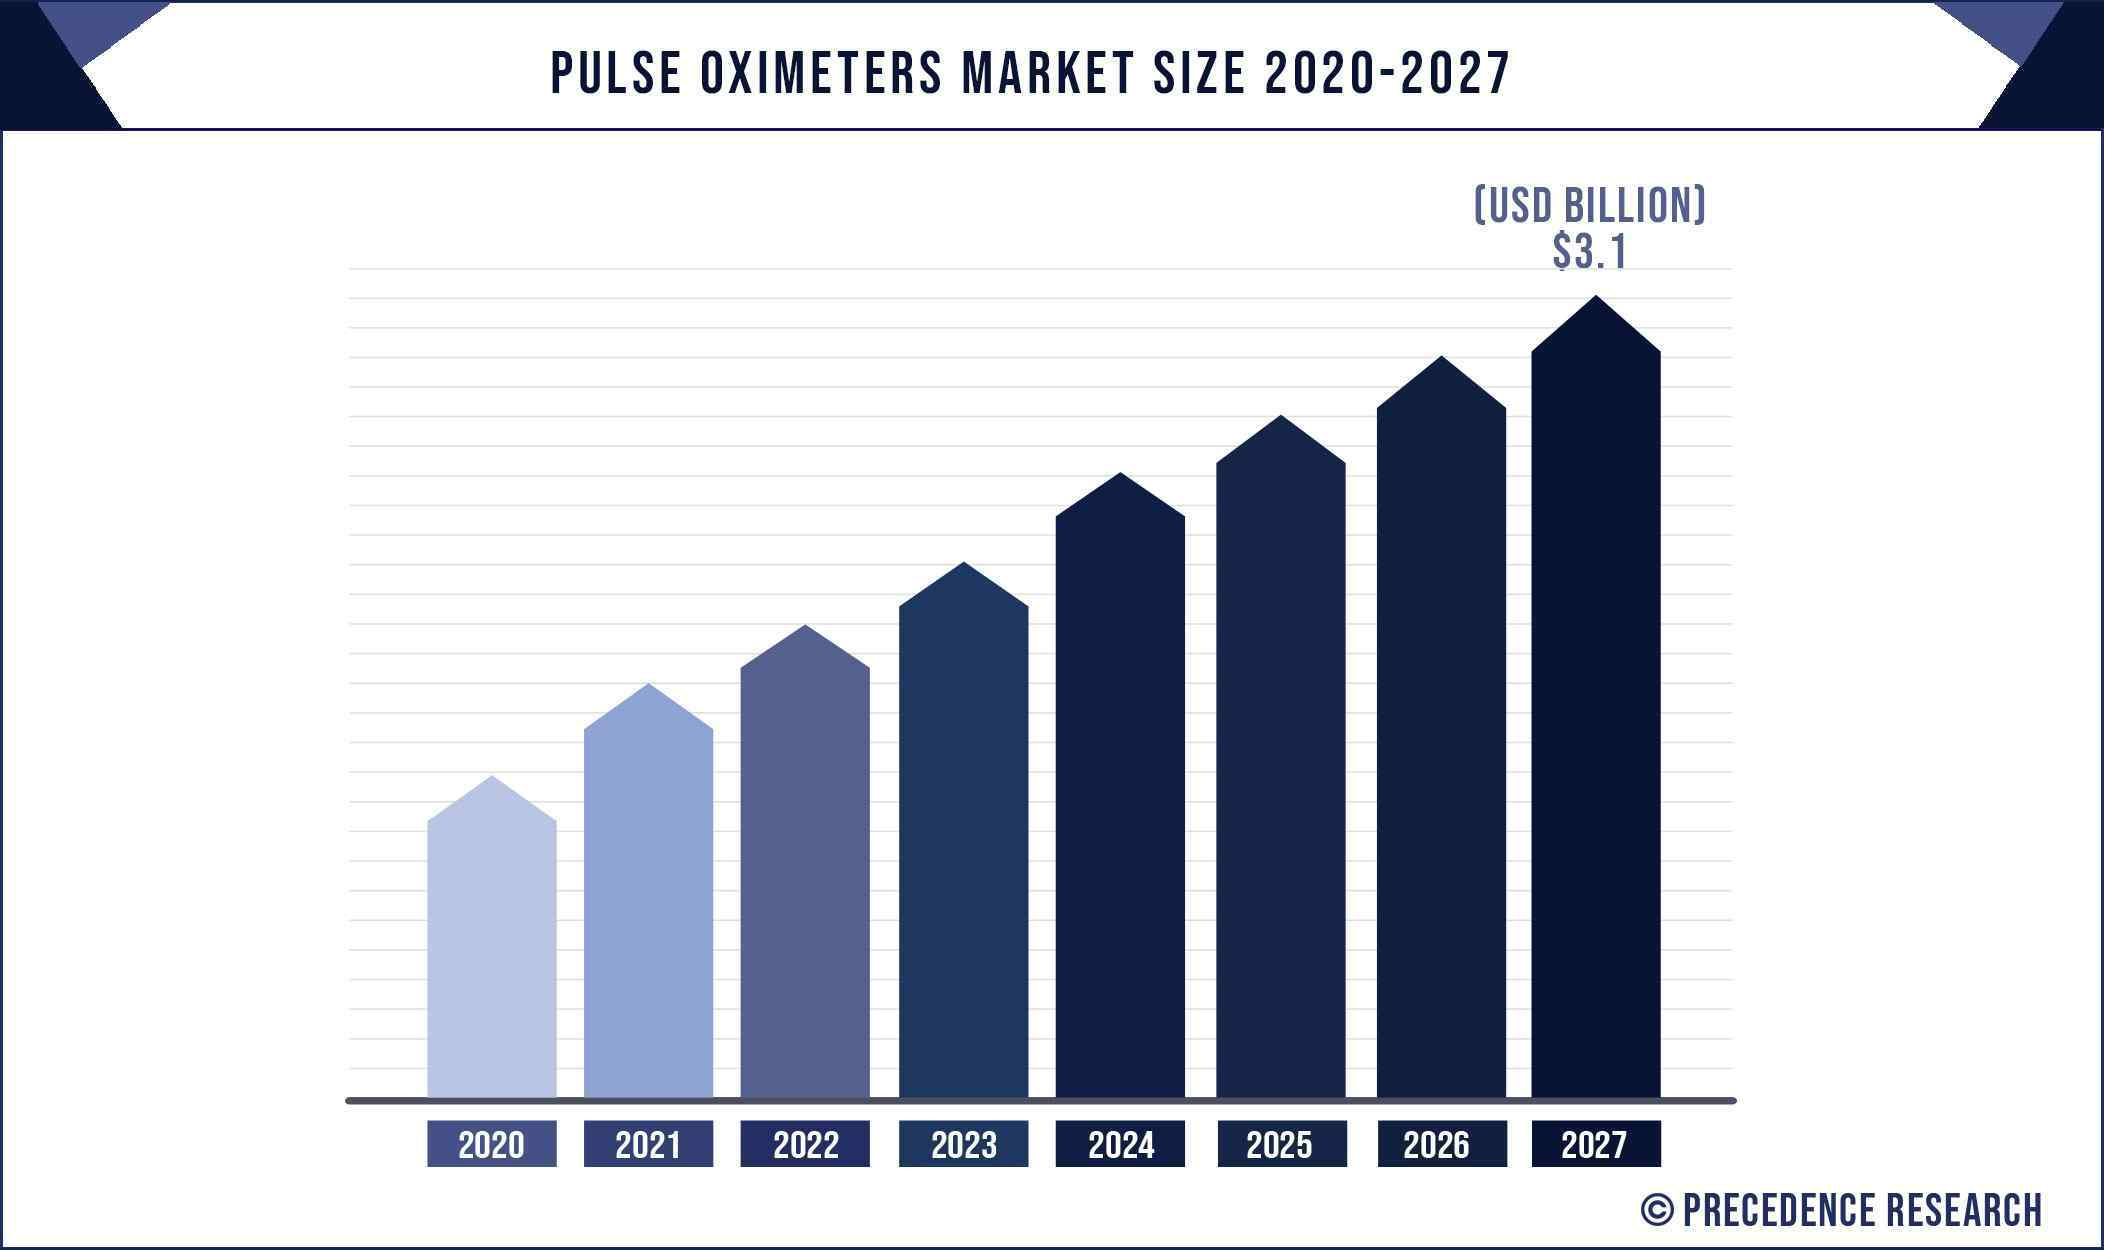 Pulse Oximeters Market Size 2020 to 2027